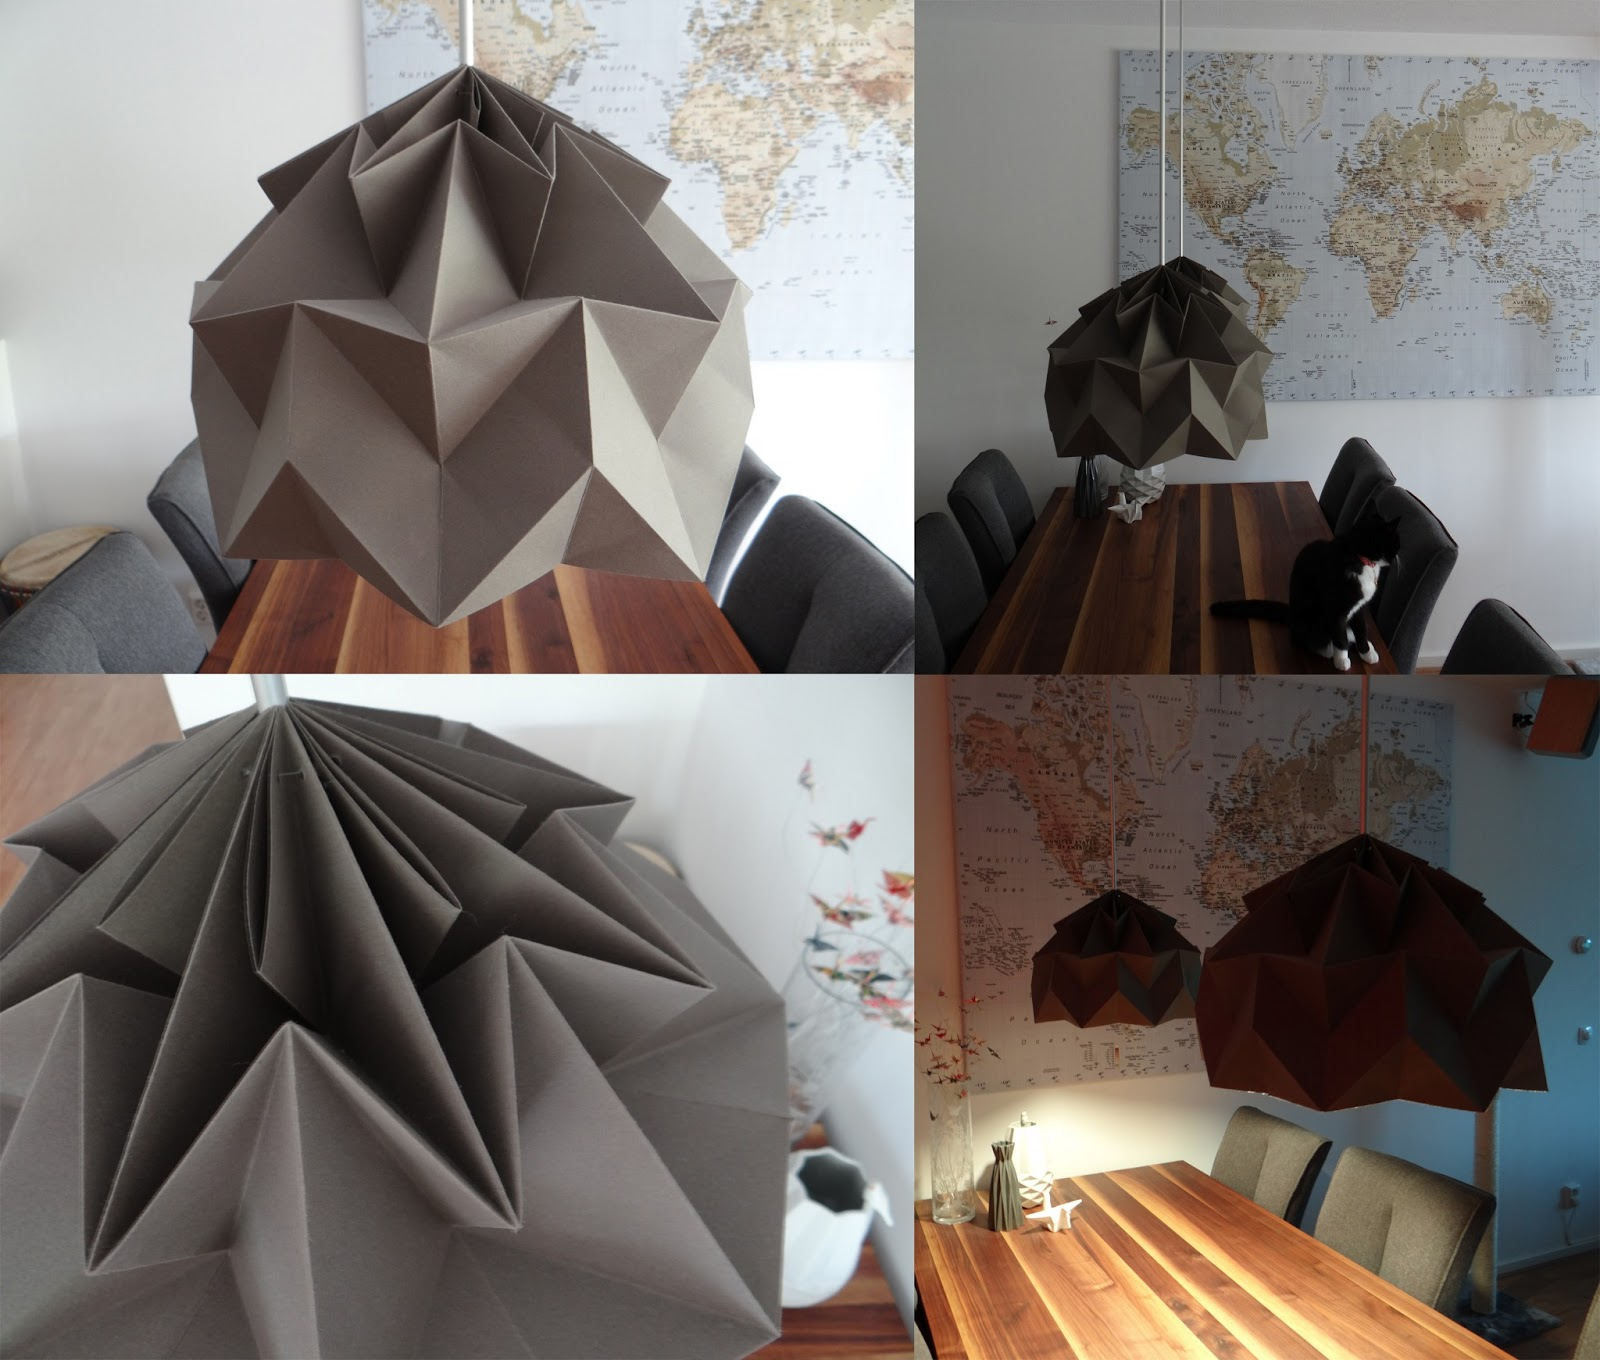 Creating My Own Lampshades Based On The Origami Magic Ball